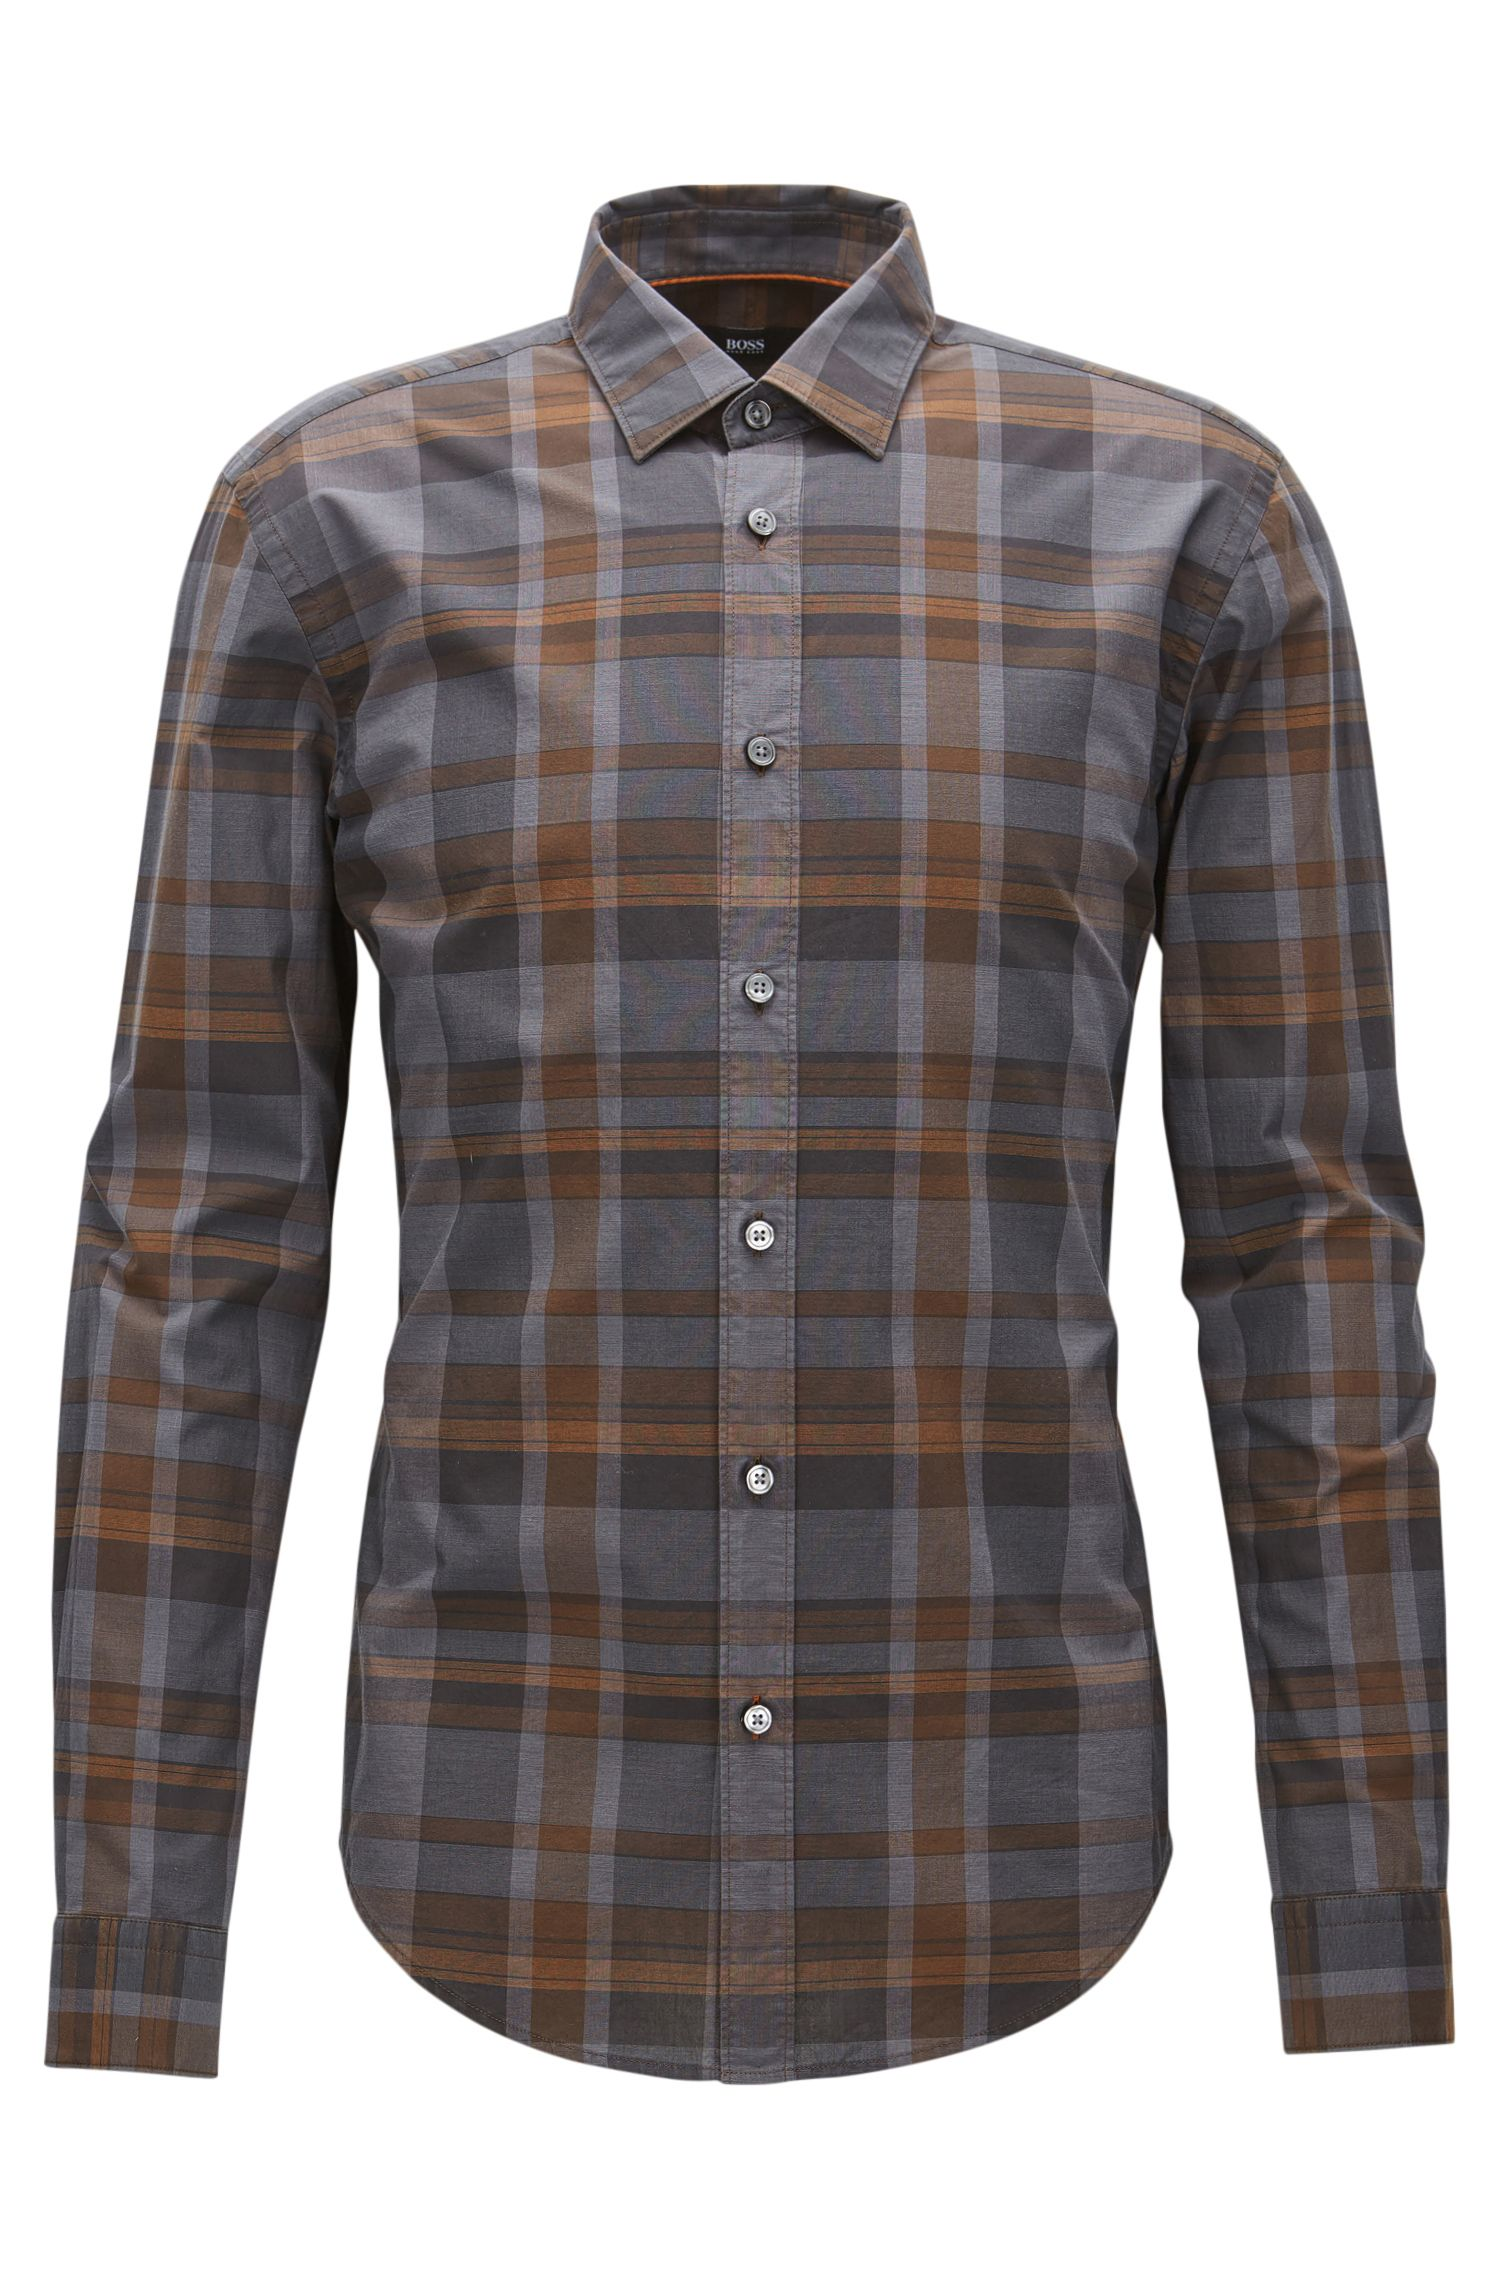 'Ronni' | Slim Fit, Plaid Cotton Button Down Shirt